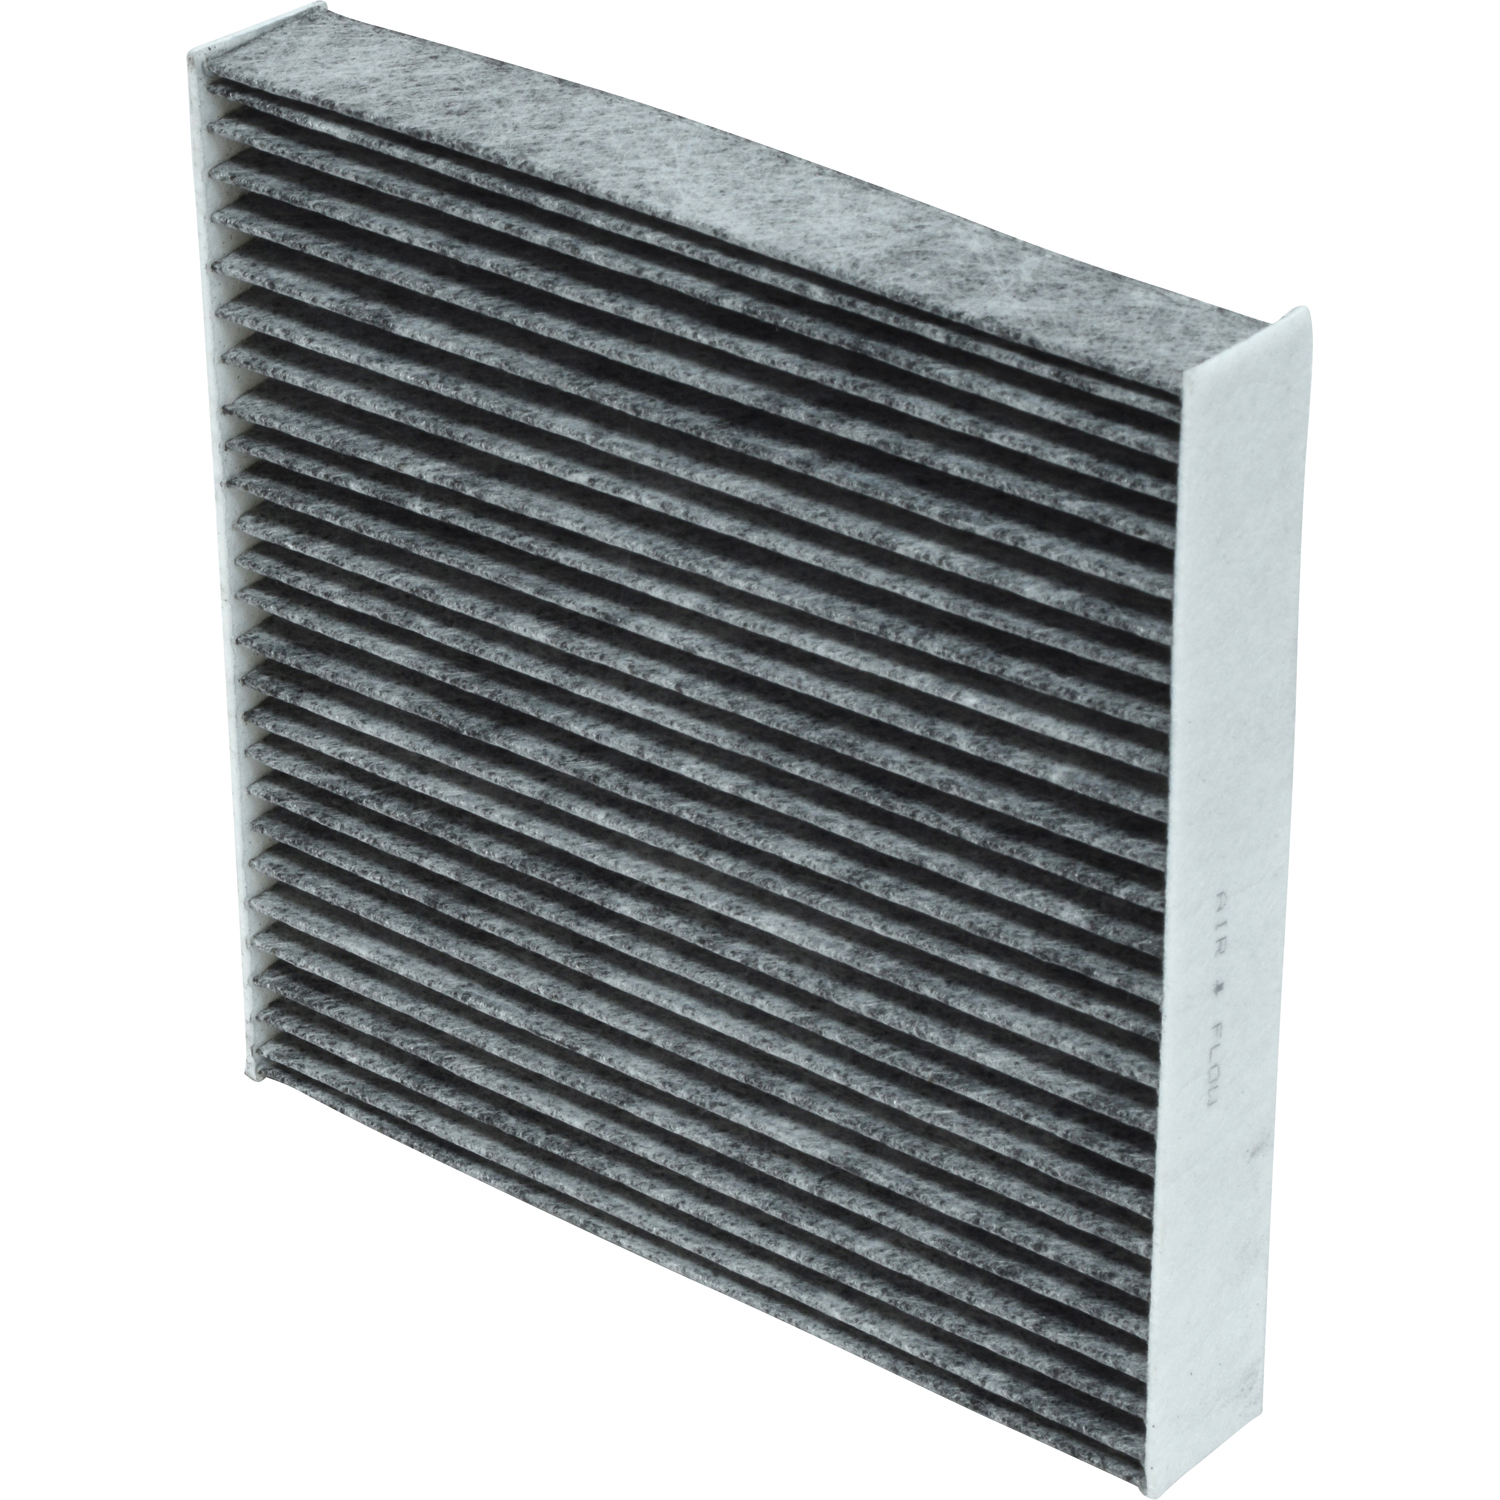 Charcoal Cabin Air Filter FI 1263C